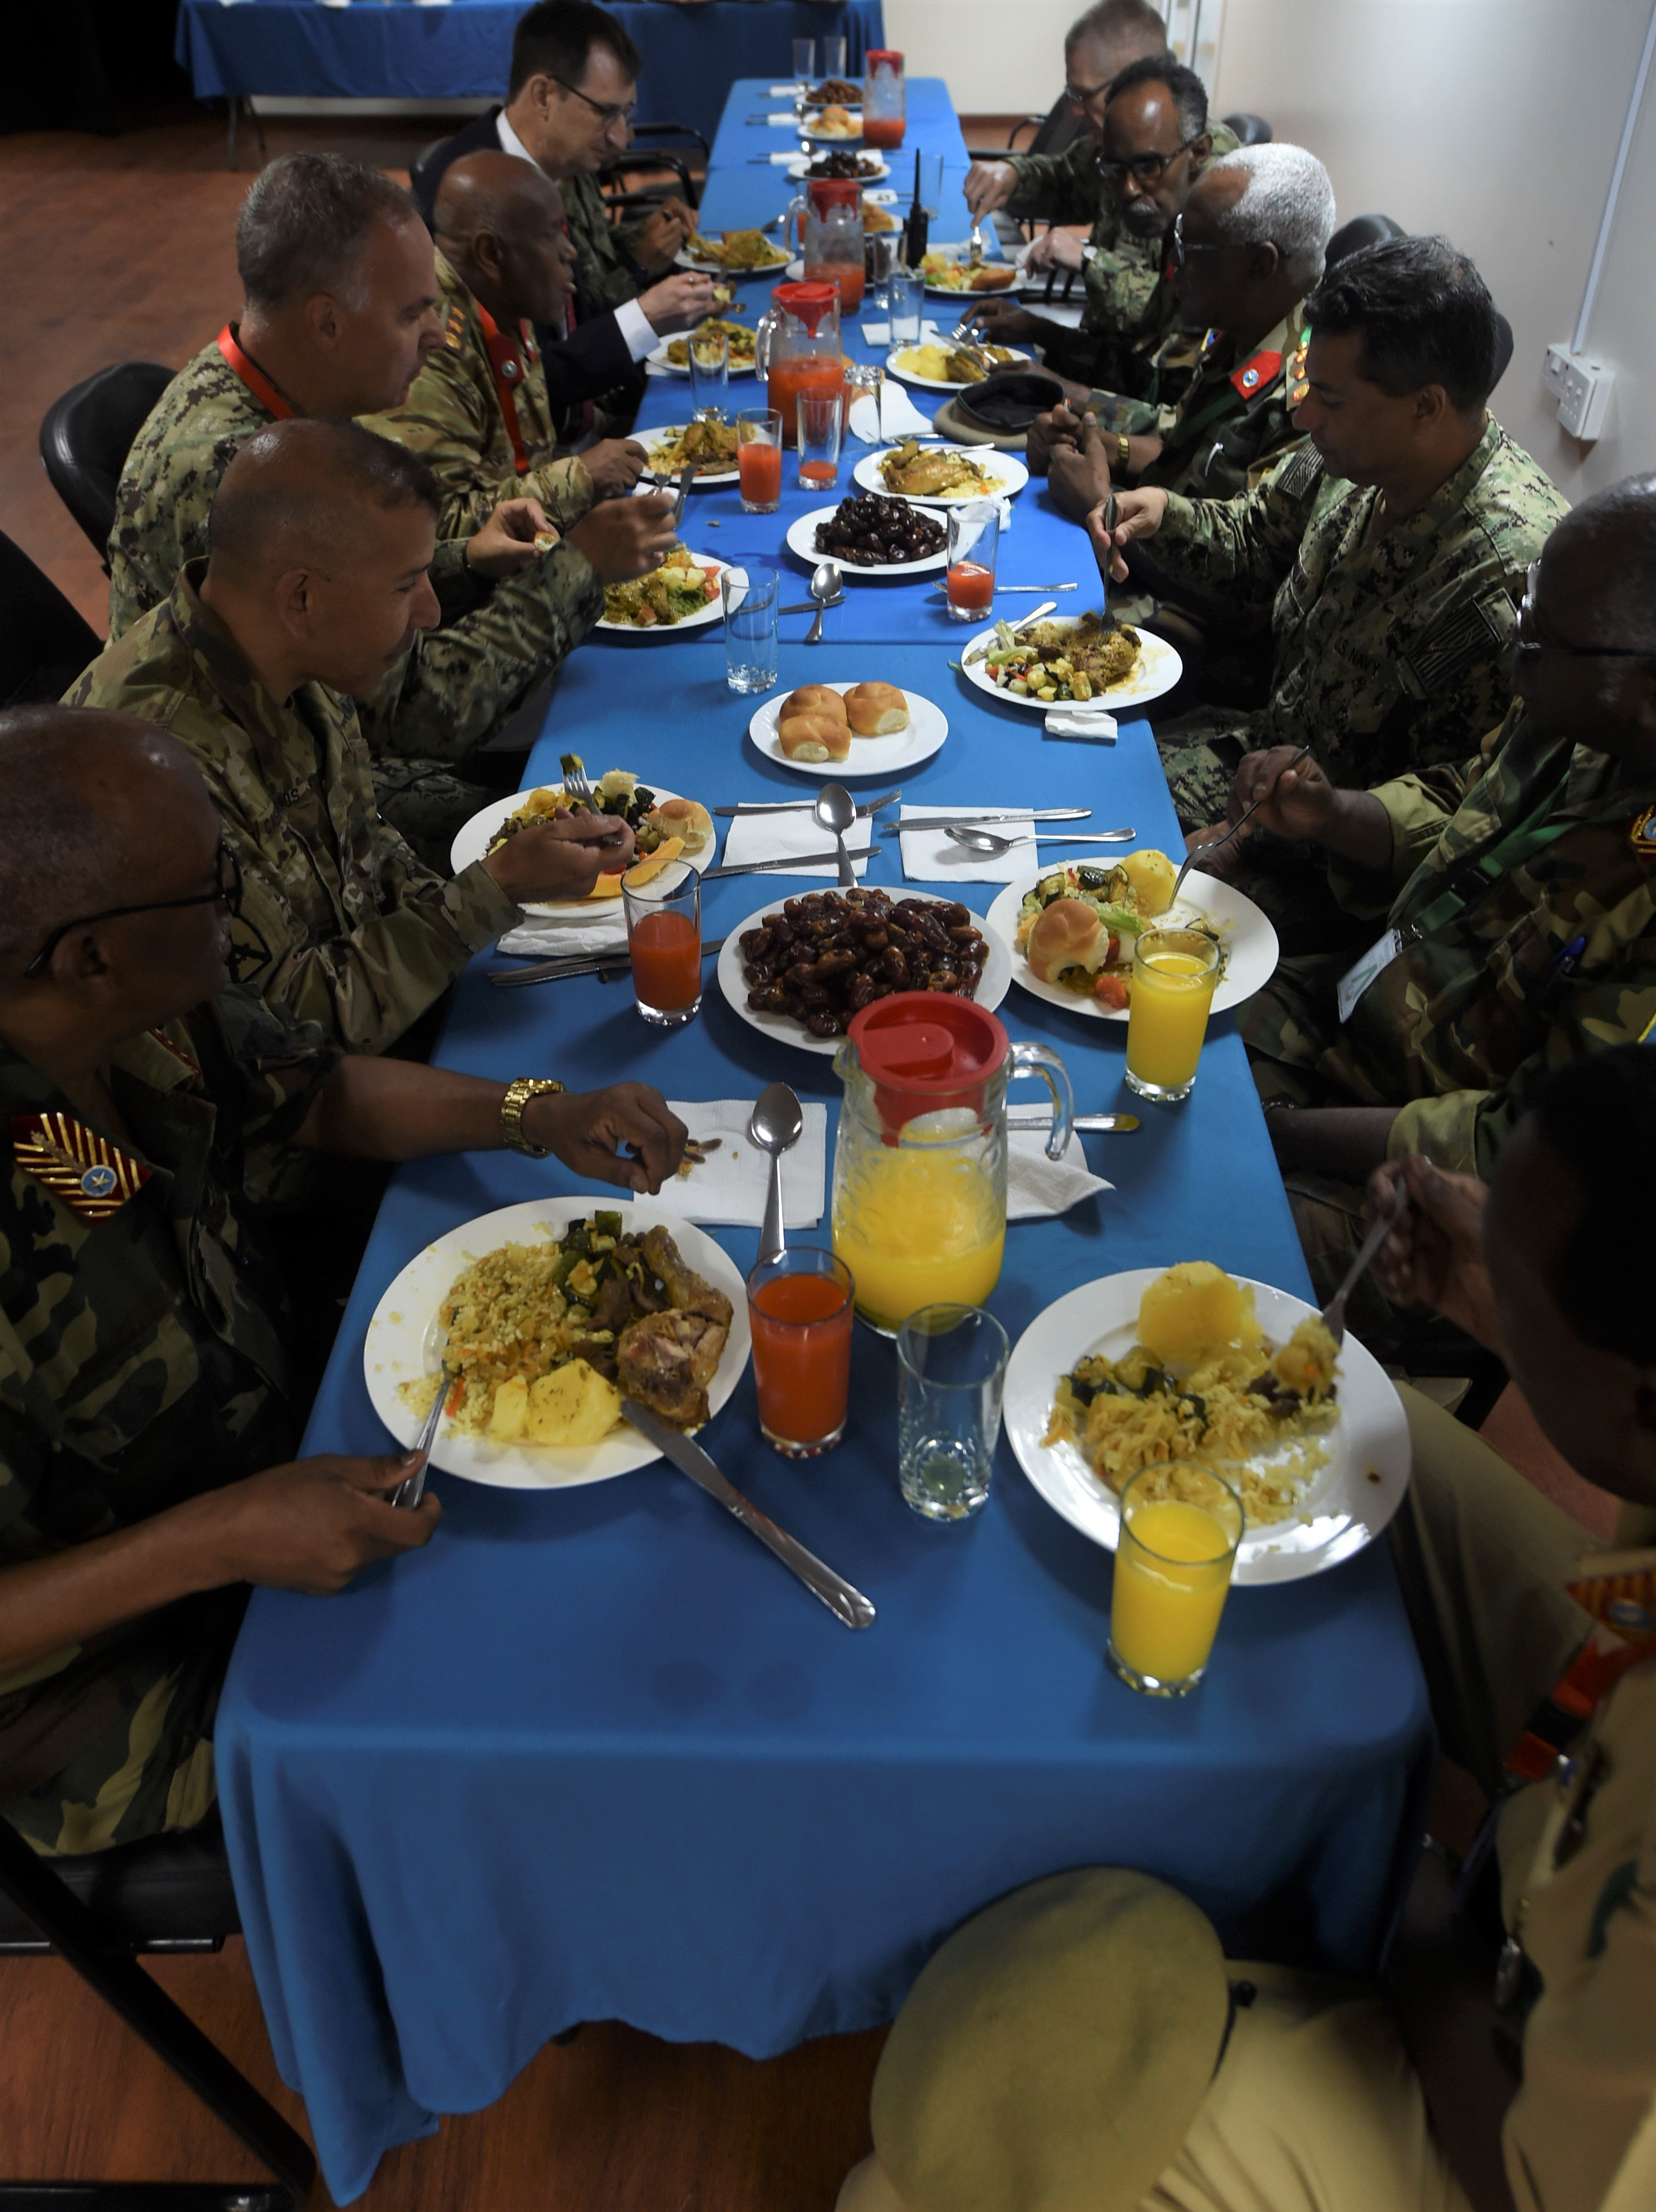 Service members from the U.S. and Somali National Army join for an Iftar, the nightly meal that ends the day's fast during Ramadan, at the Mogadishu International Airport in Mogadishu, Somalia, June 5, 2017. U.S. Army Brig. Gen. Miguel Castellanos, Combined Joint Task Force-Horn of Africa deputy commanding general in Somalia and Mogadishu Coordination Cell director, hosted the Iftar, strengthening bonds between the U.S. and Somali militaries. (U.S. Air Force Photo by Staff Sgt. Eboni Prince/Released)